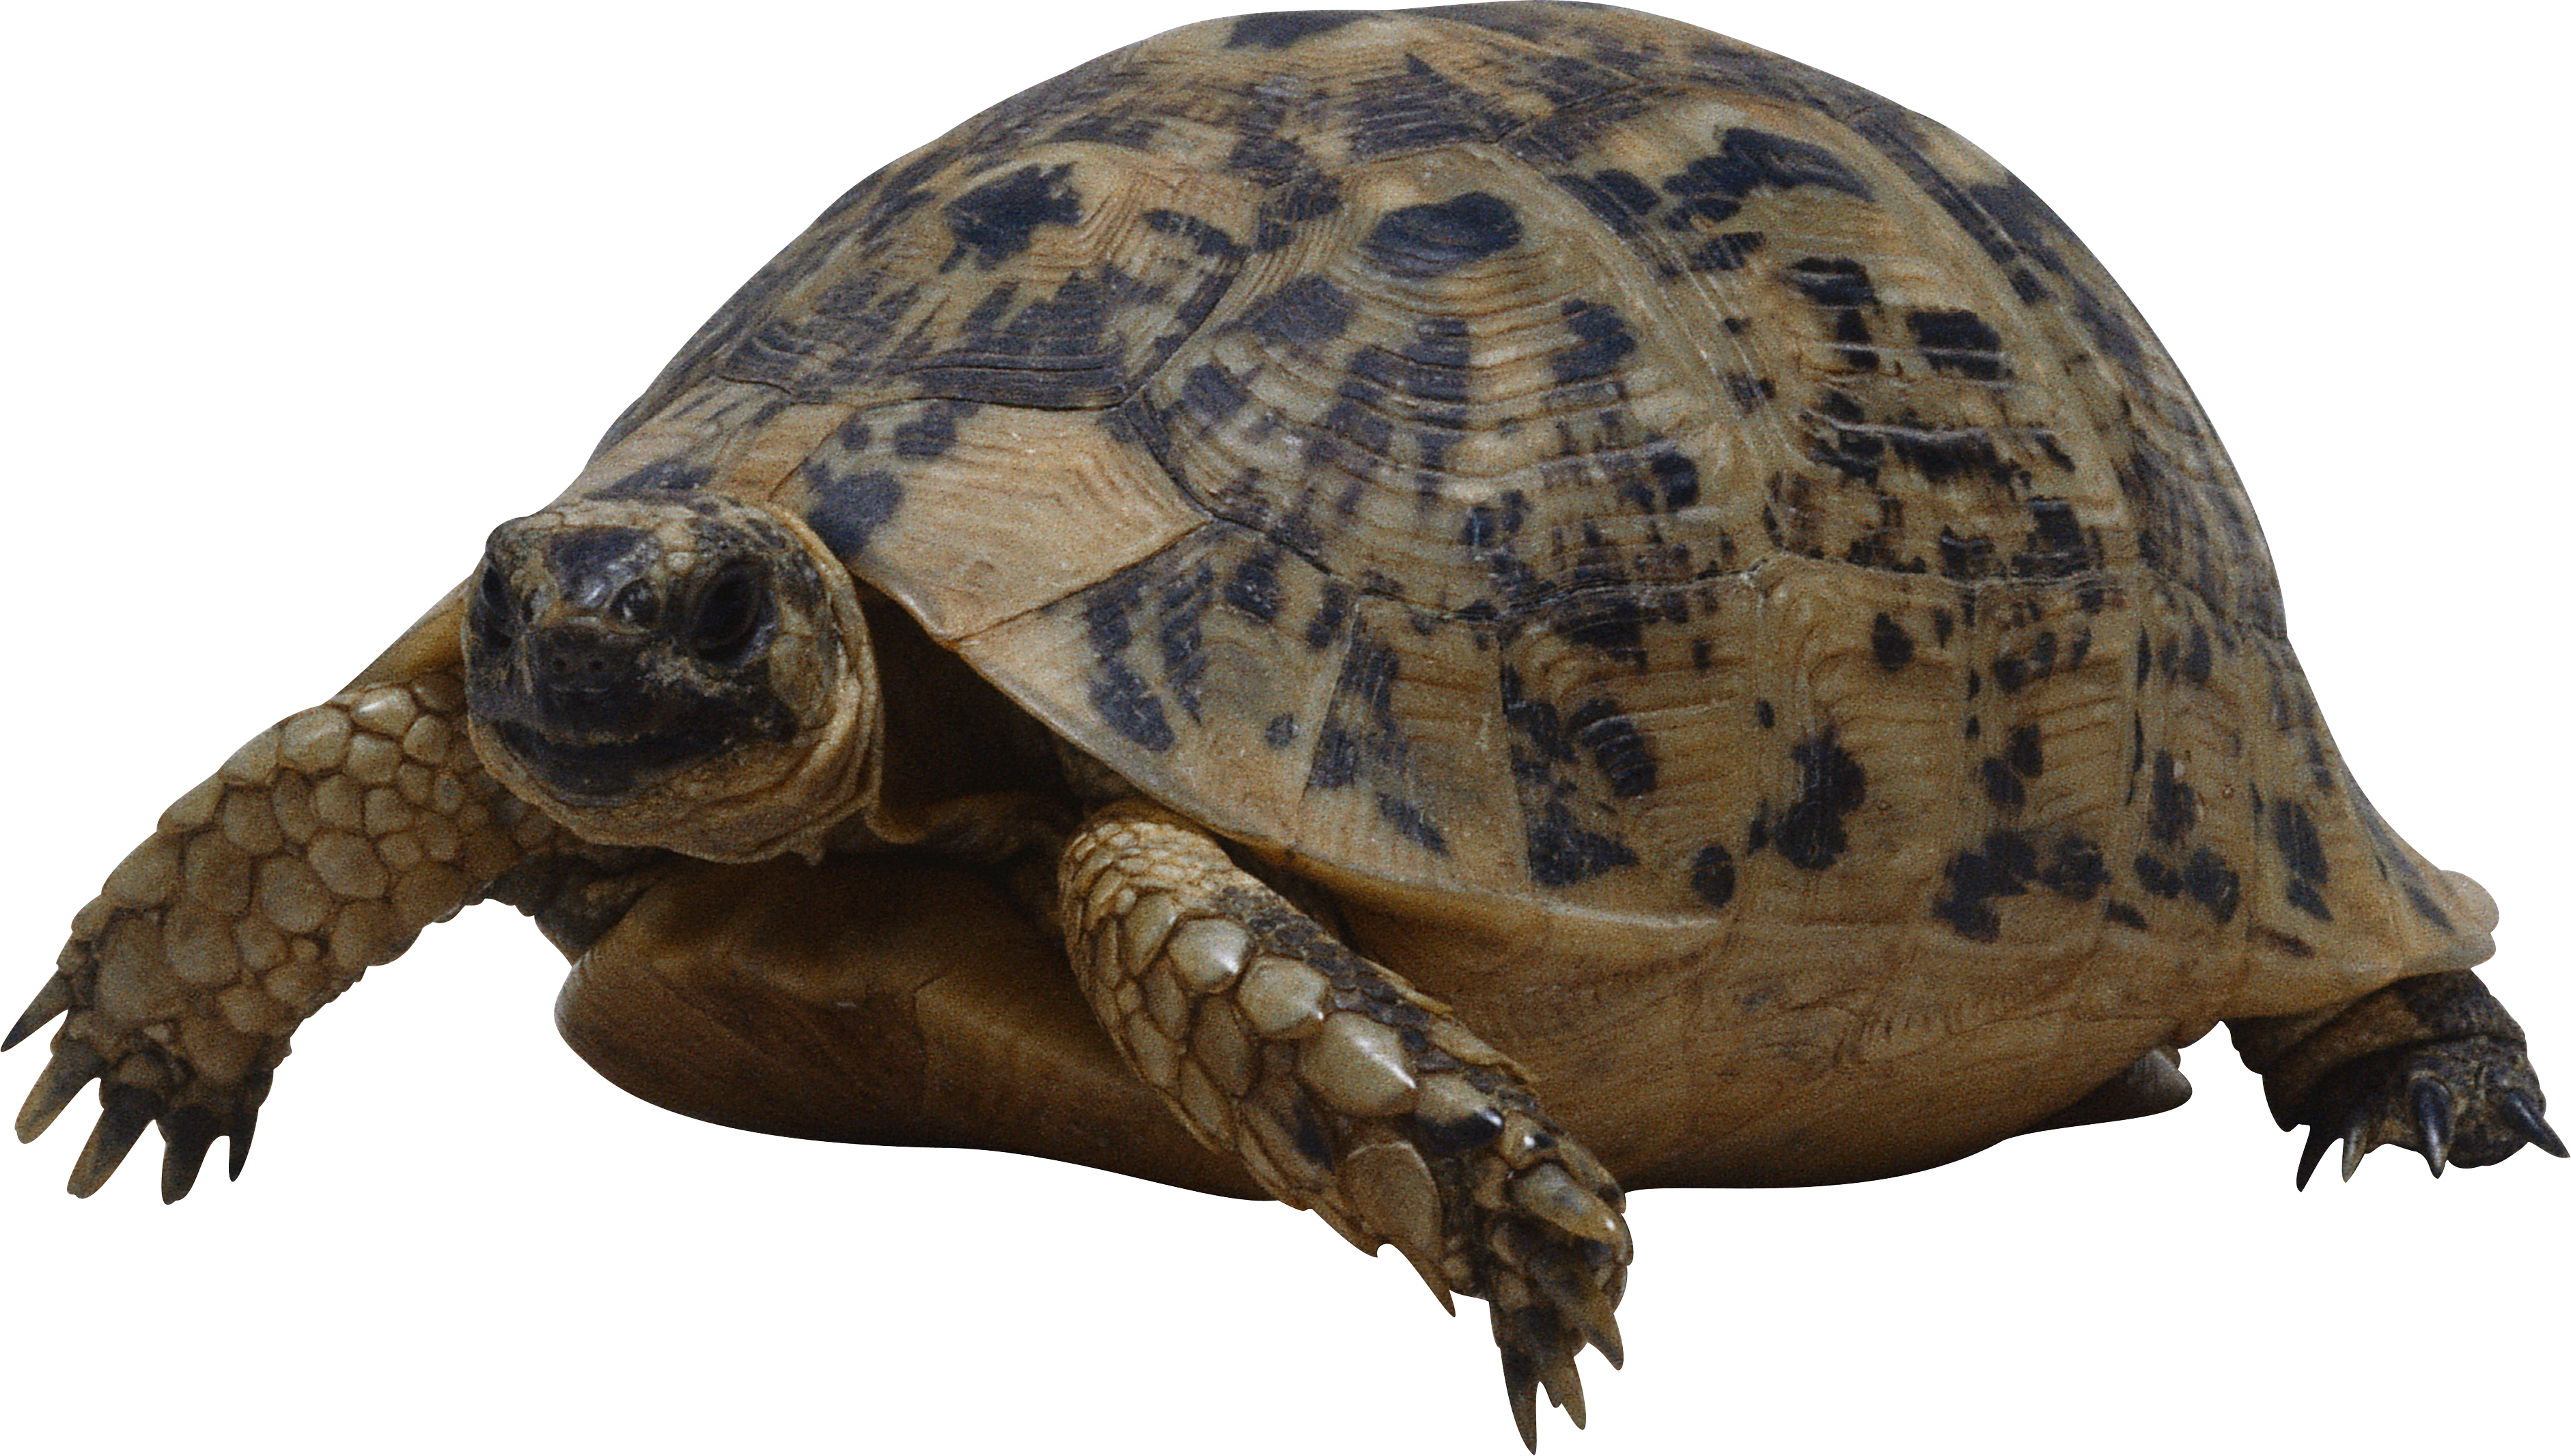 Turtle PNG images free download.